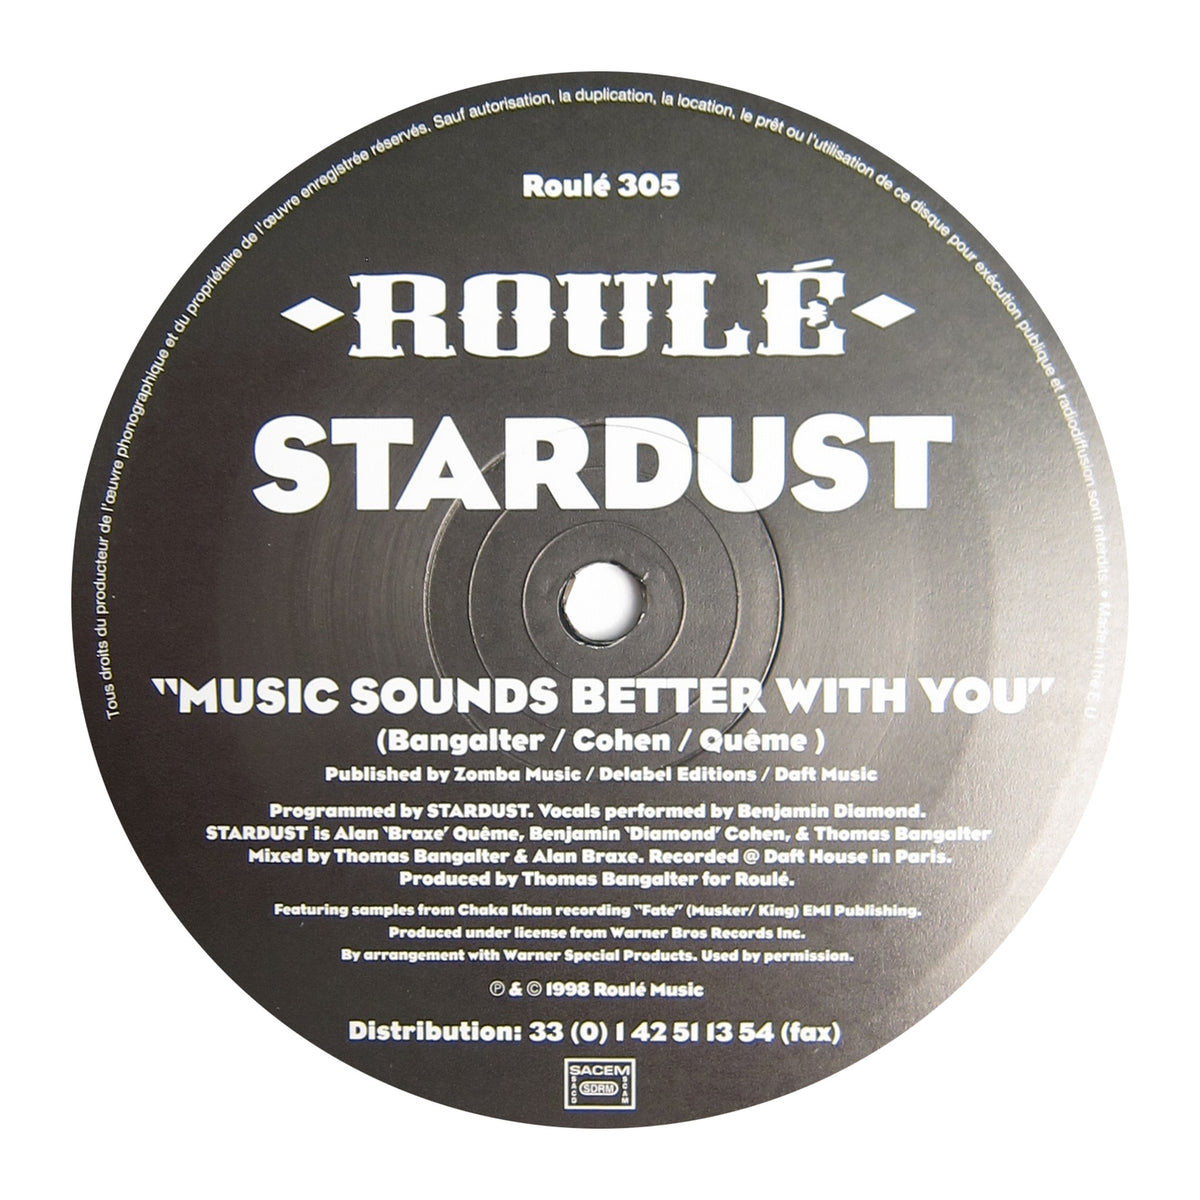 Stardust: Music Sounds Better With You (Daft Punk) Vinyl 12""